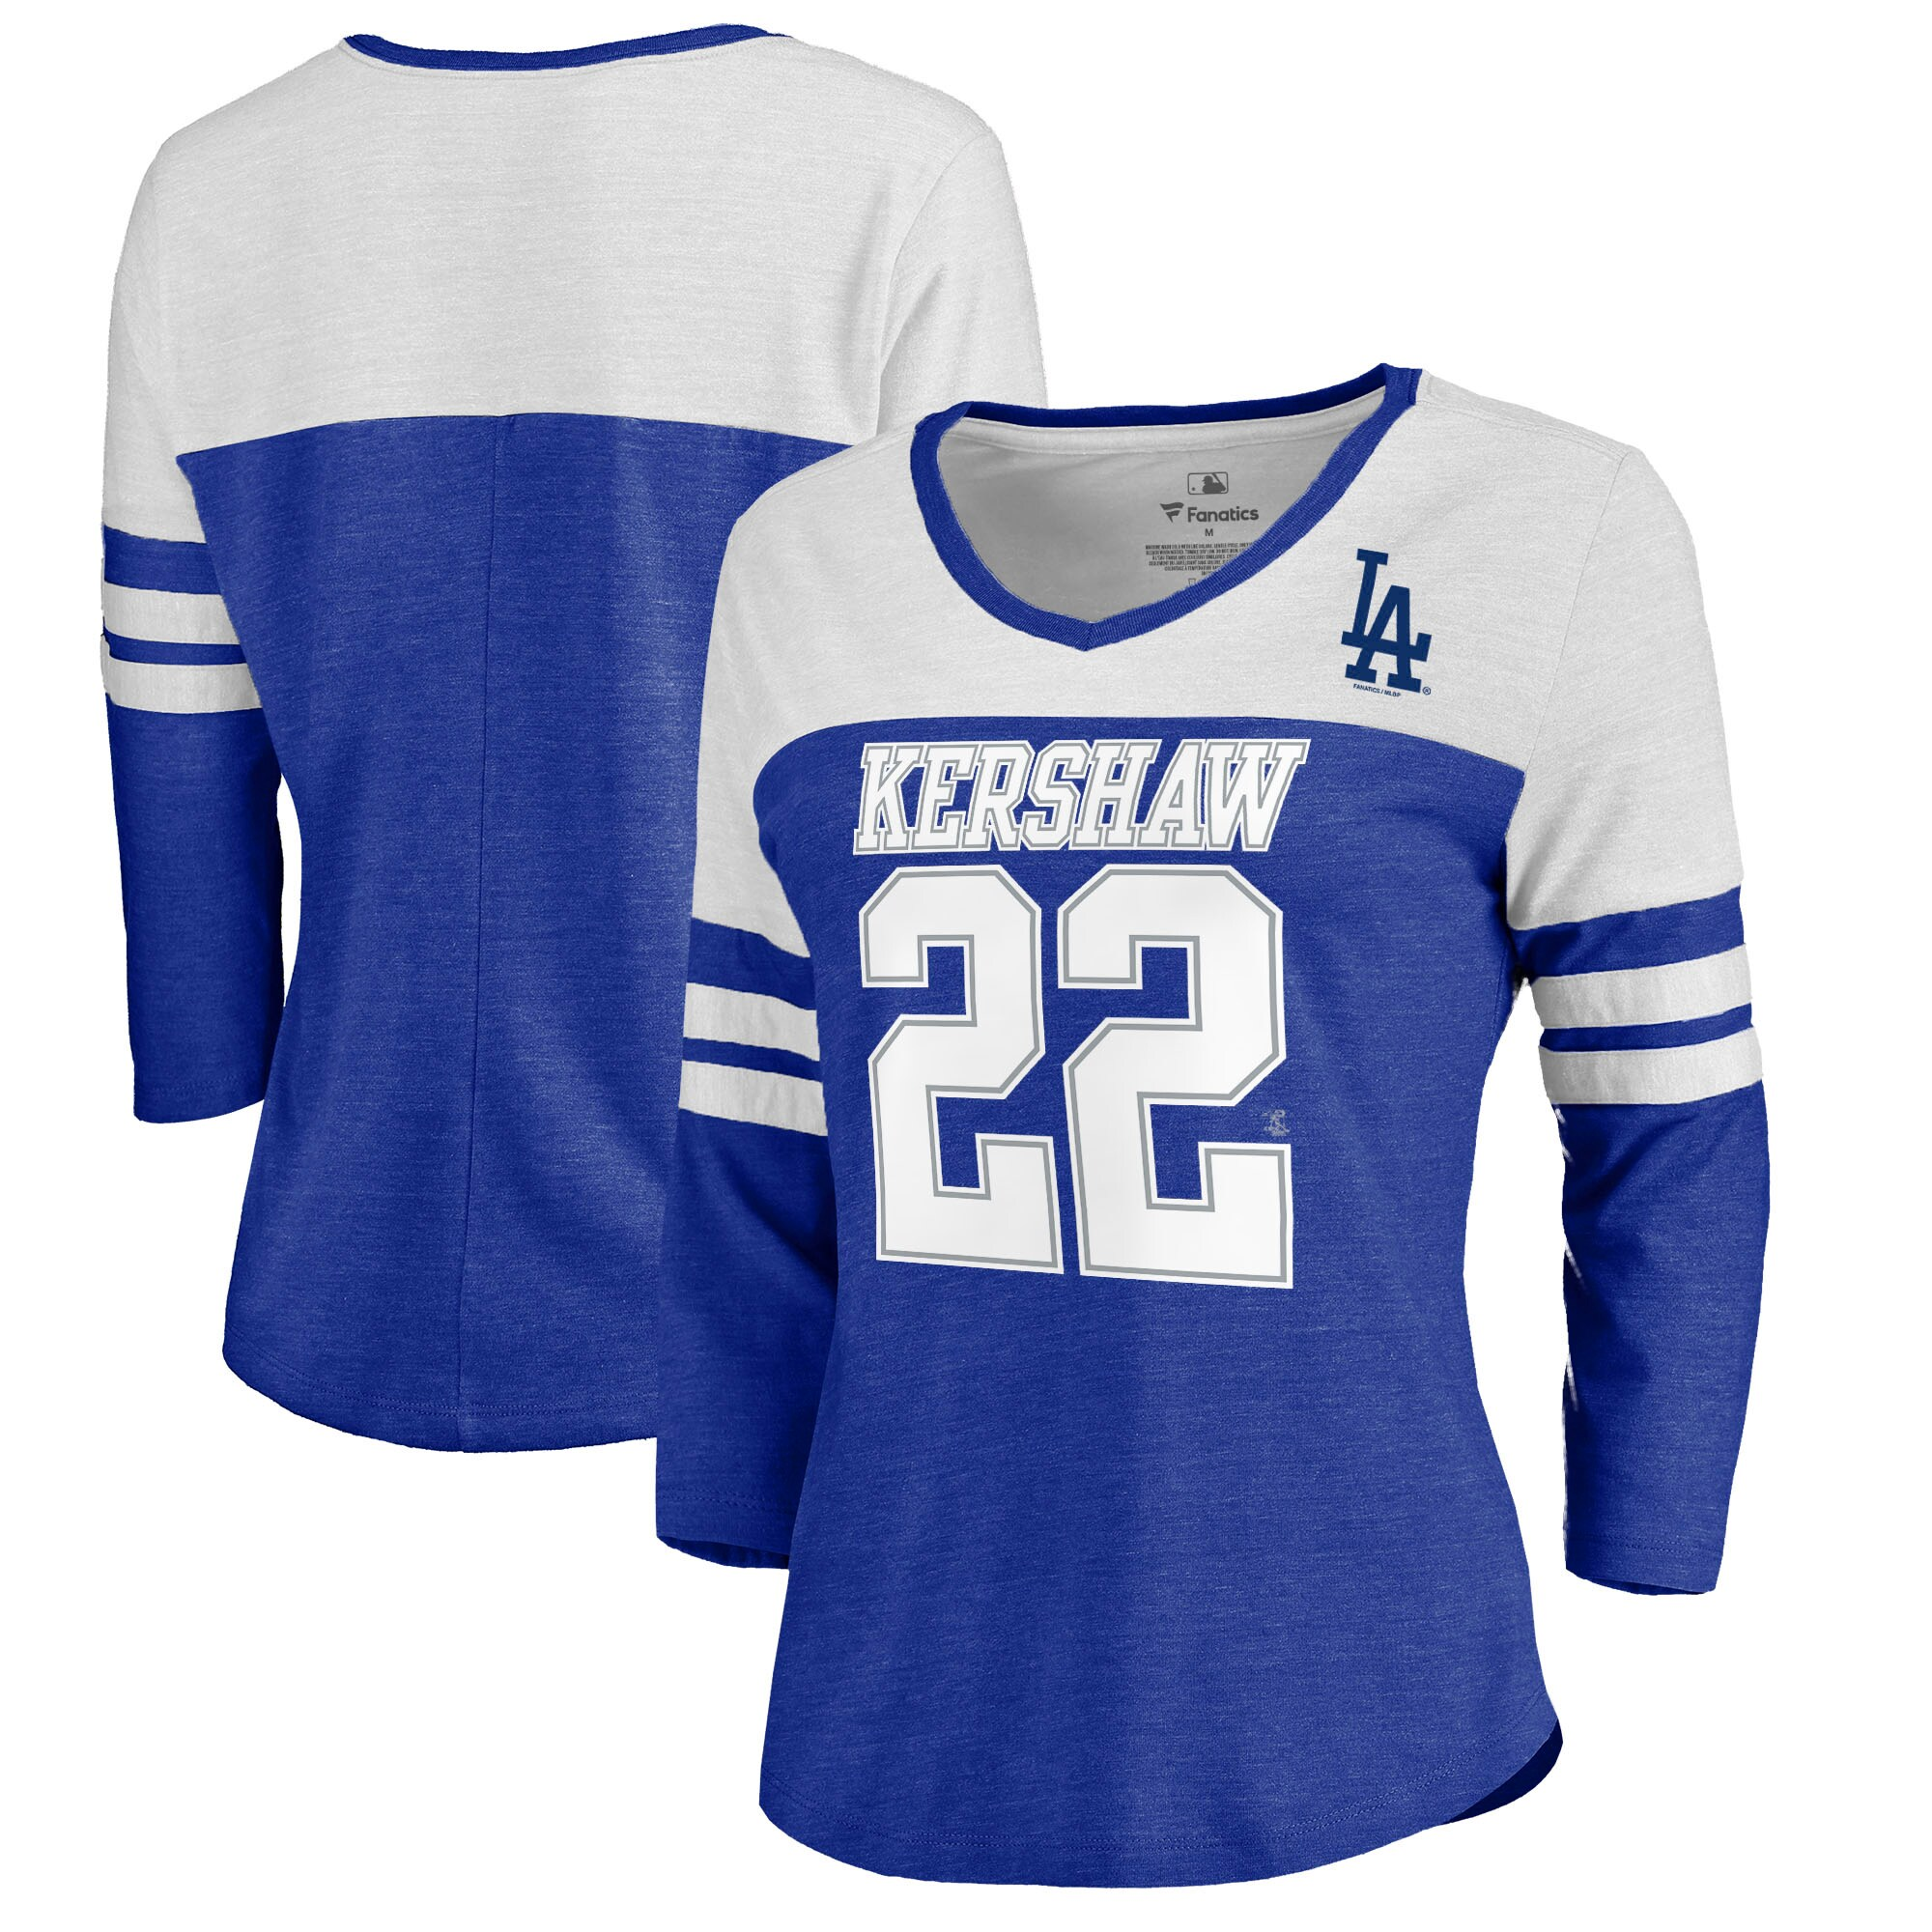 Clayton Kershaw Los Angeles Dodgers Fanatics Branded Women's Ace Name & Number 3/4-Sleeve V-Neck T-Shirt - Royal/White